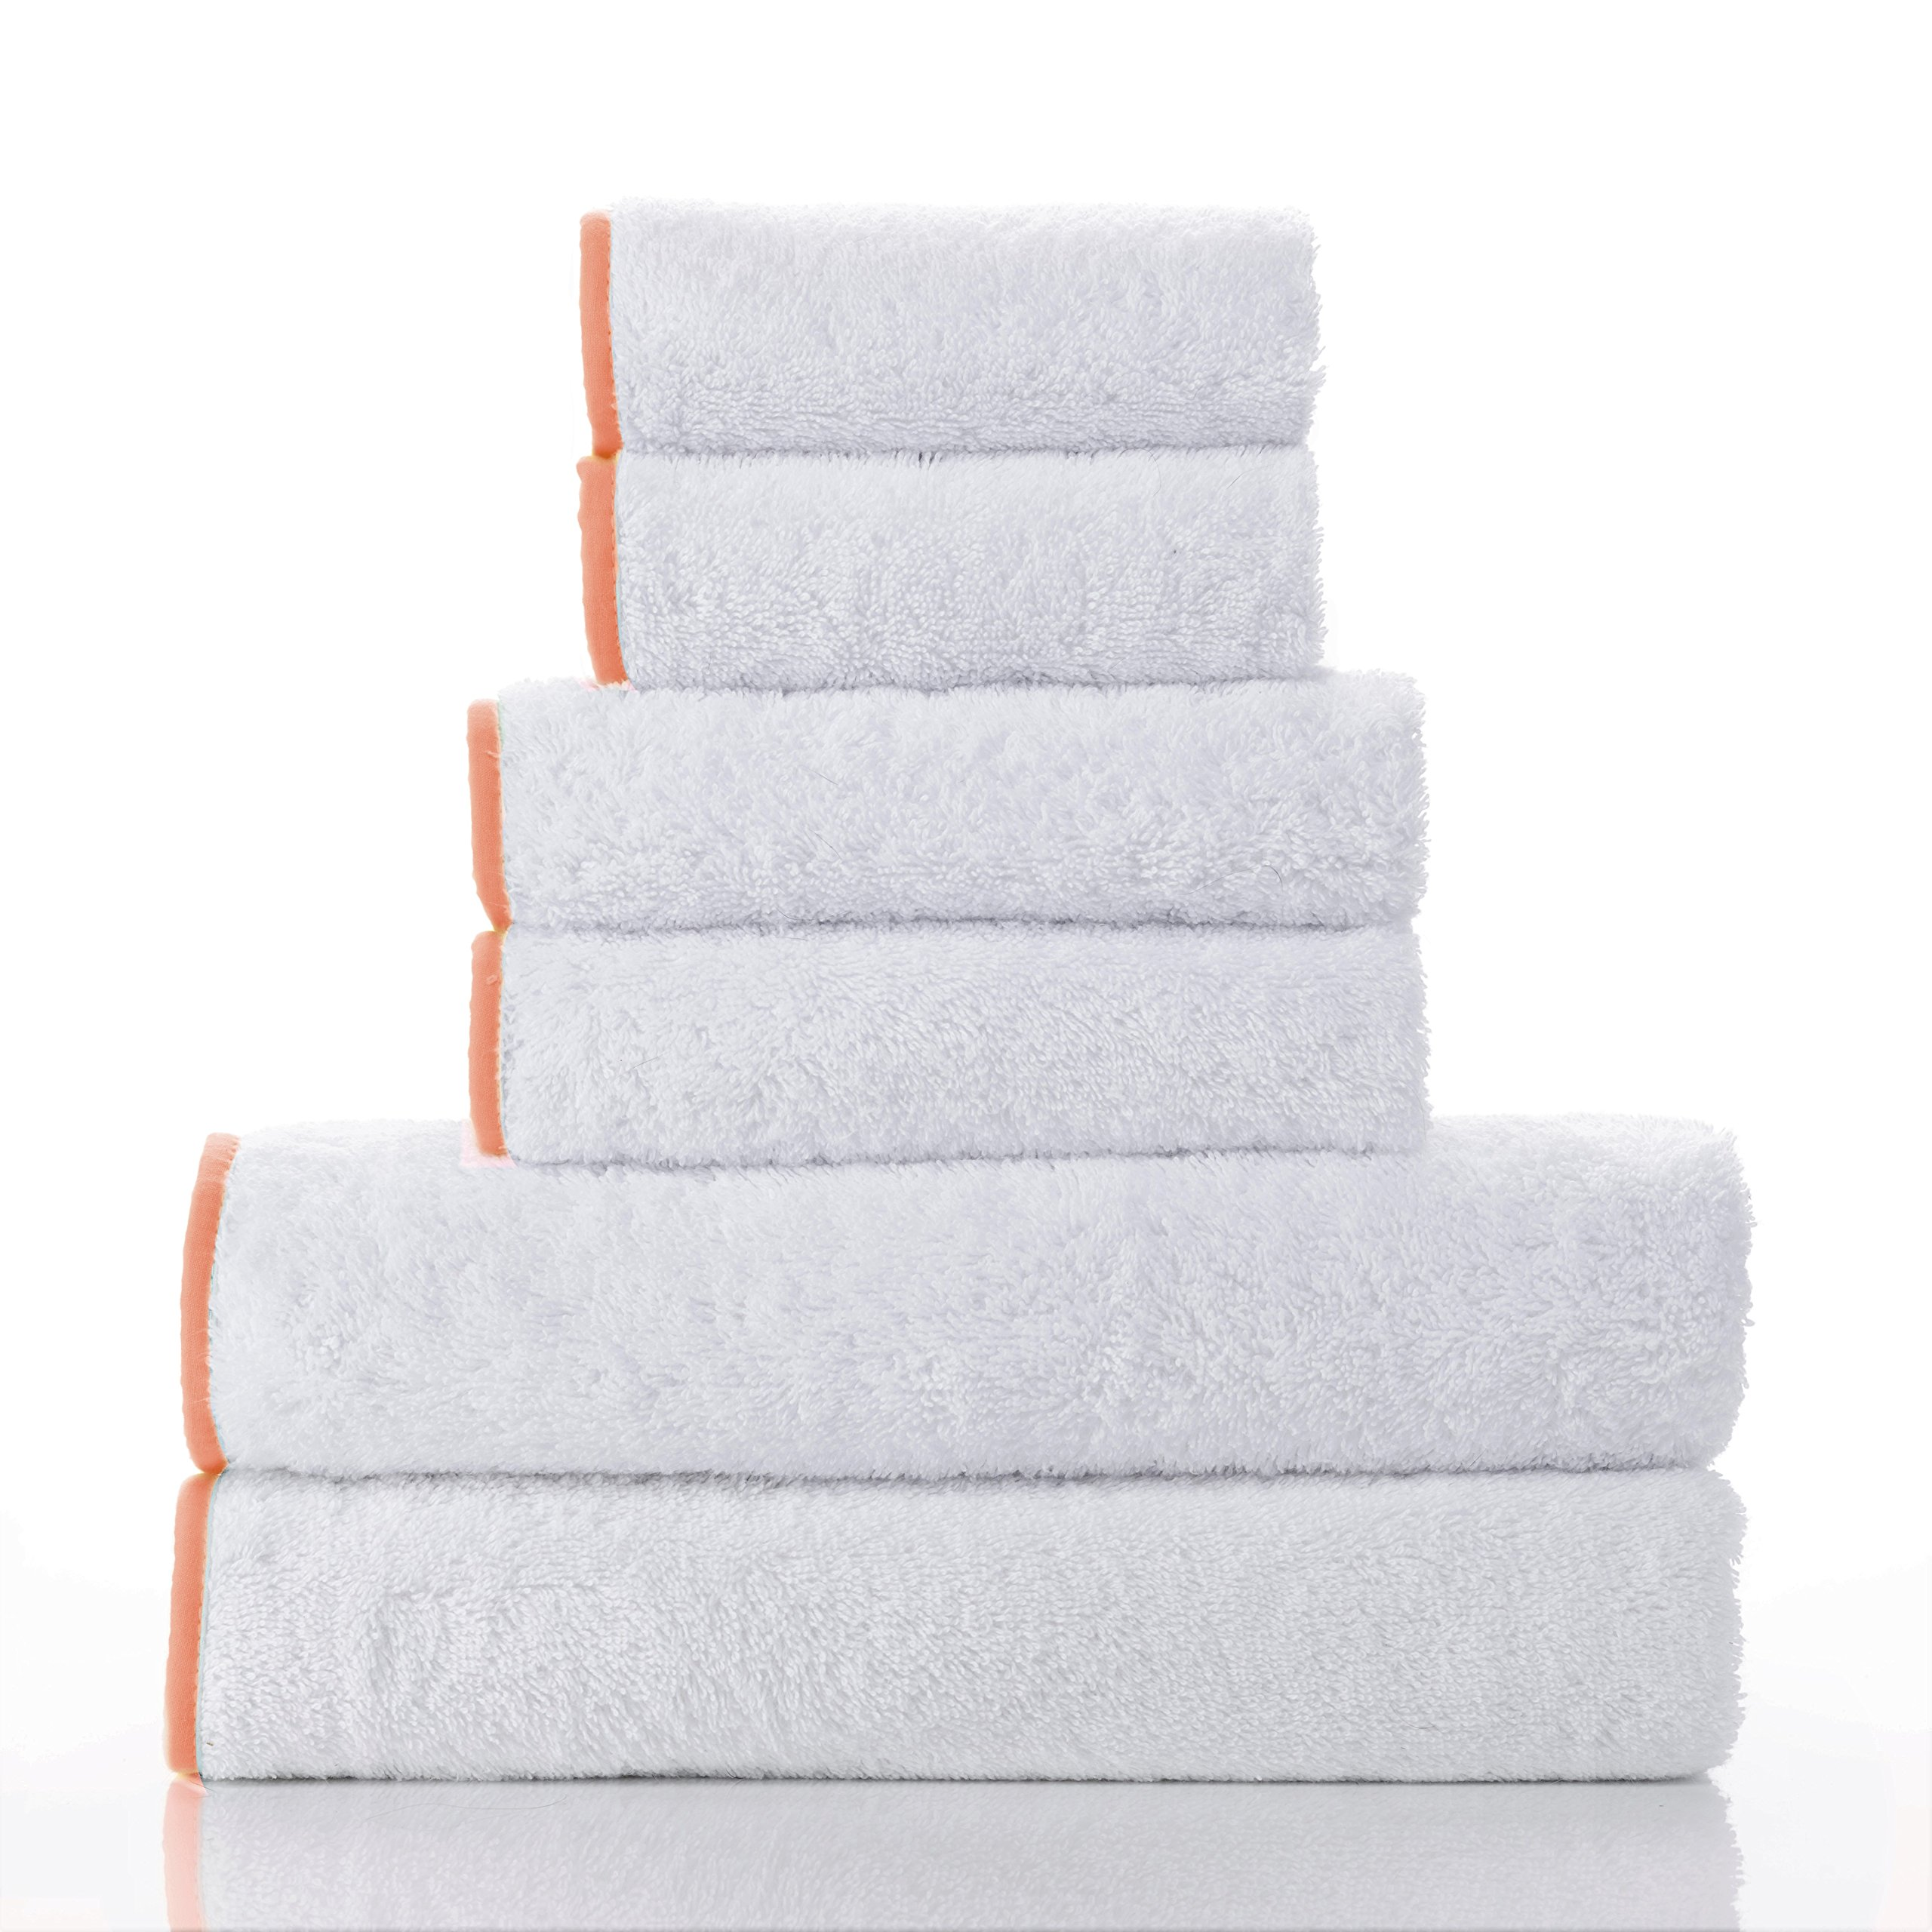 Macouba Bathroom Towel Set by Superior Quality 600GSM White Cotton Bath Towel Set with Coral Border/Trim| Soft, Ultra Absorbent Luxury Spa/Hotel Towel Pack of 2 Bath Towels, 2 Hand, 2 Face Washcloths